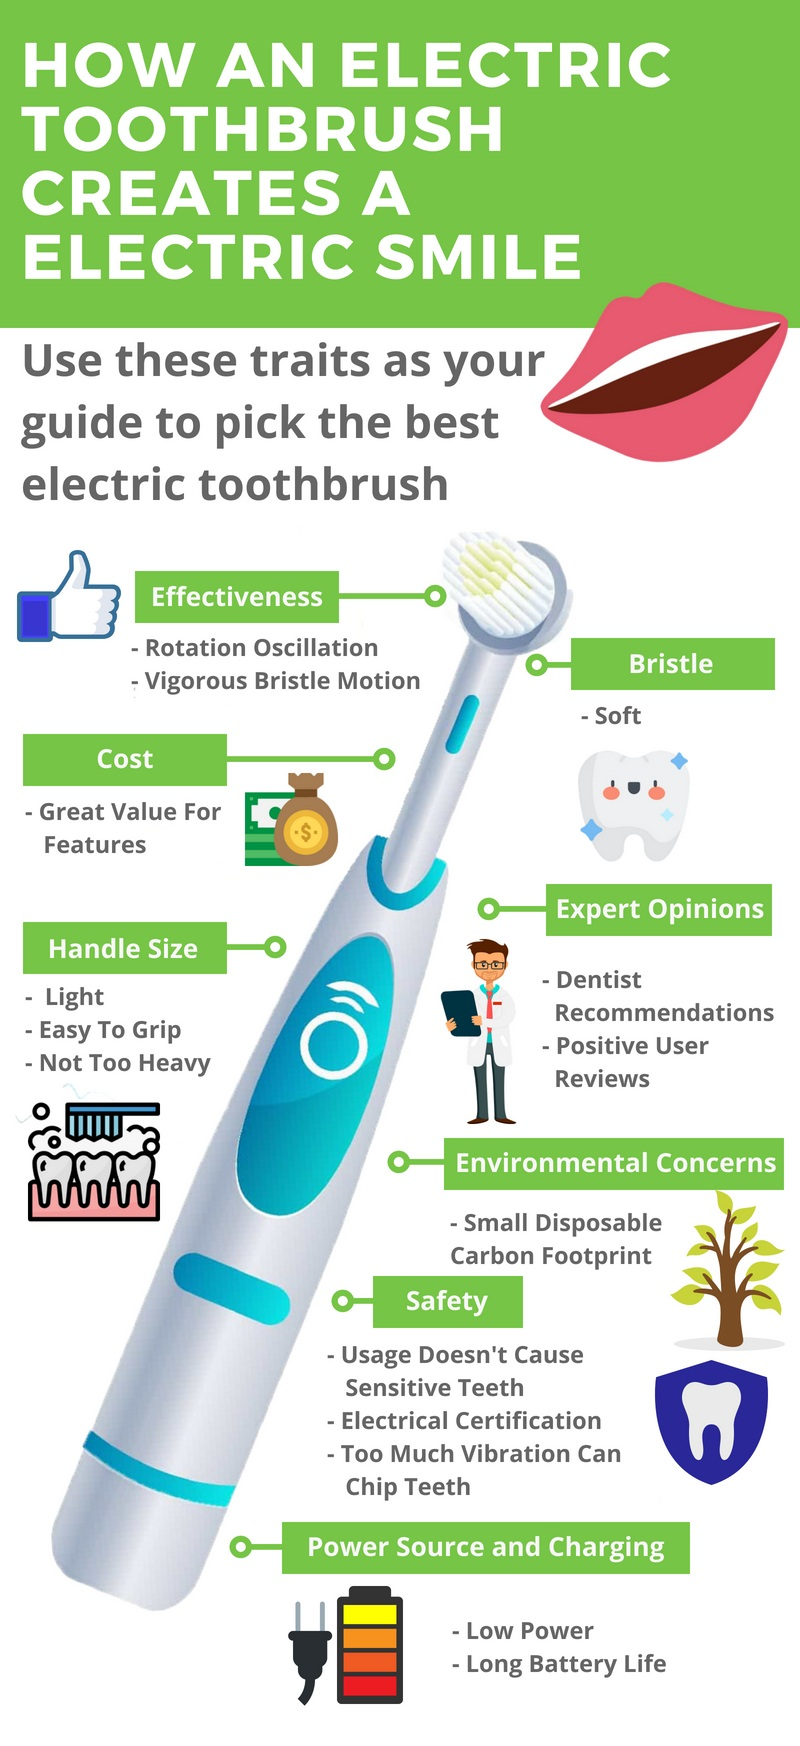 What Not to do with an Electric Toothbrush